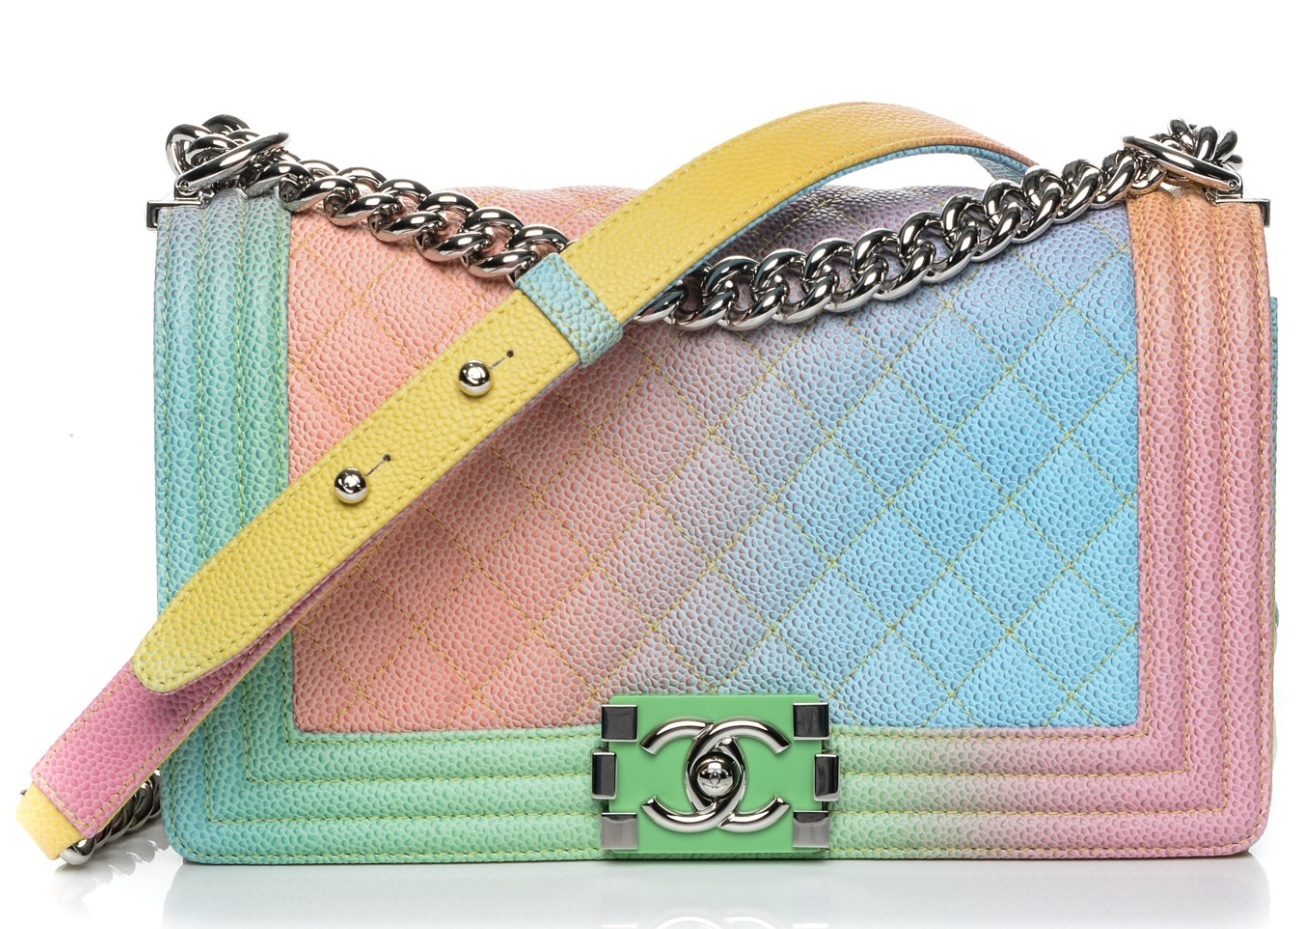 680eb44b3517 Rainbow. Rainbow. Previous. AUTHENTIC CHANEL LIMITED EDITION RAINBOW  QUILTED CAVIAR MEDIUM BOY FLAP BAG